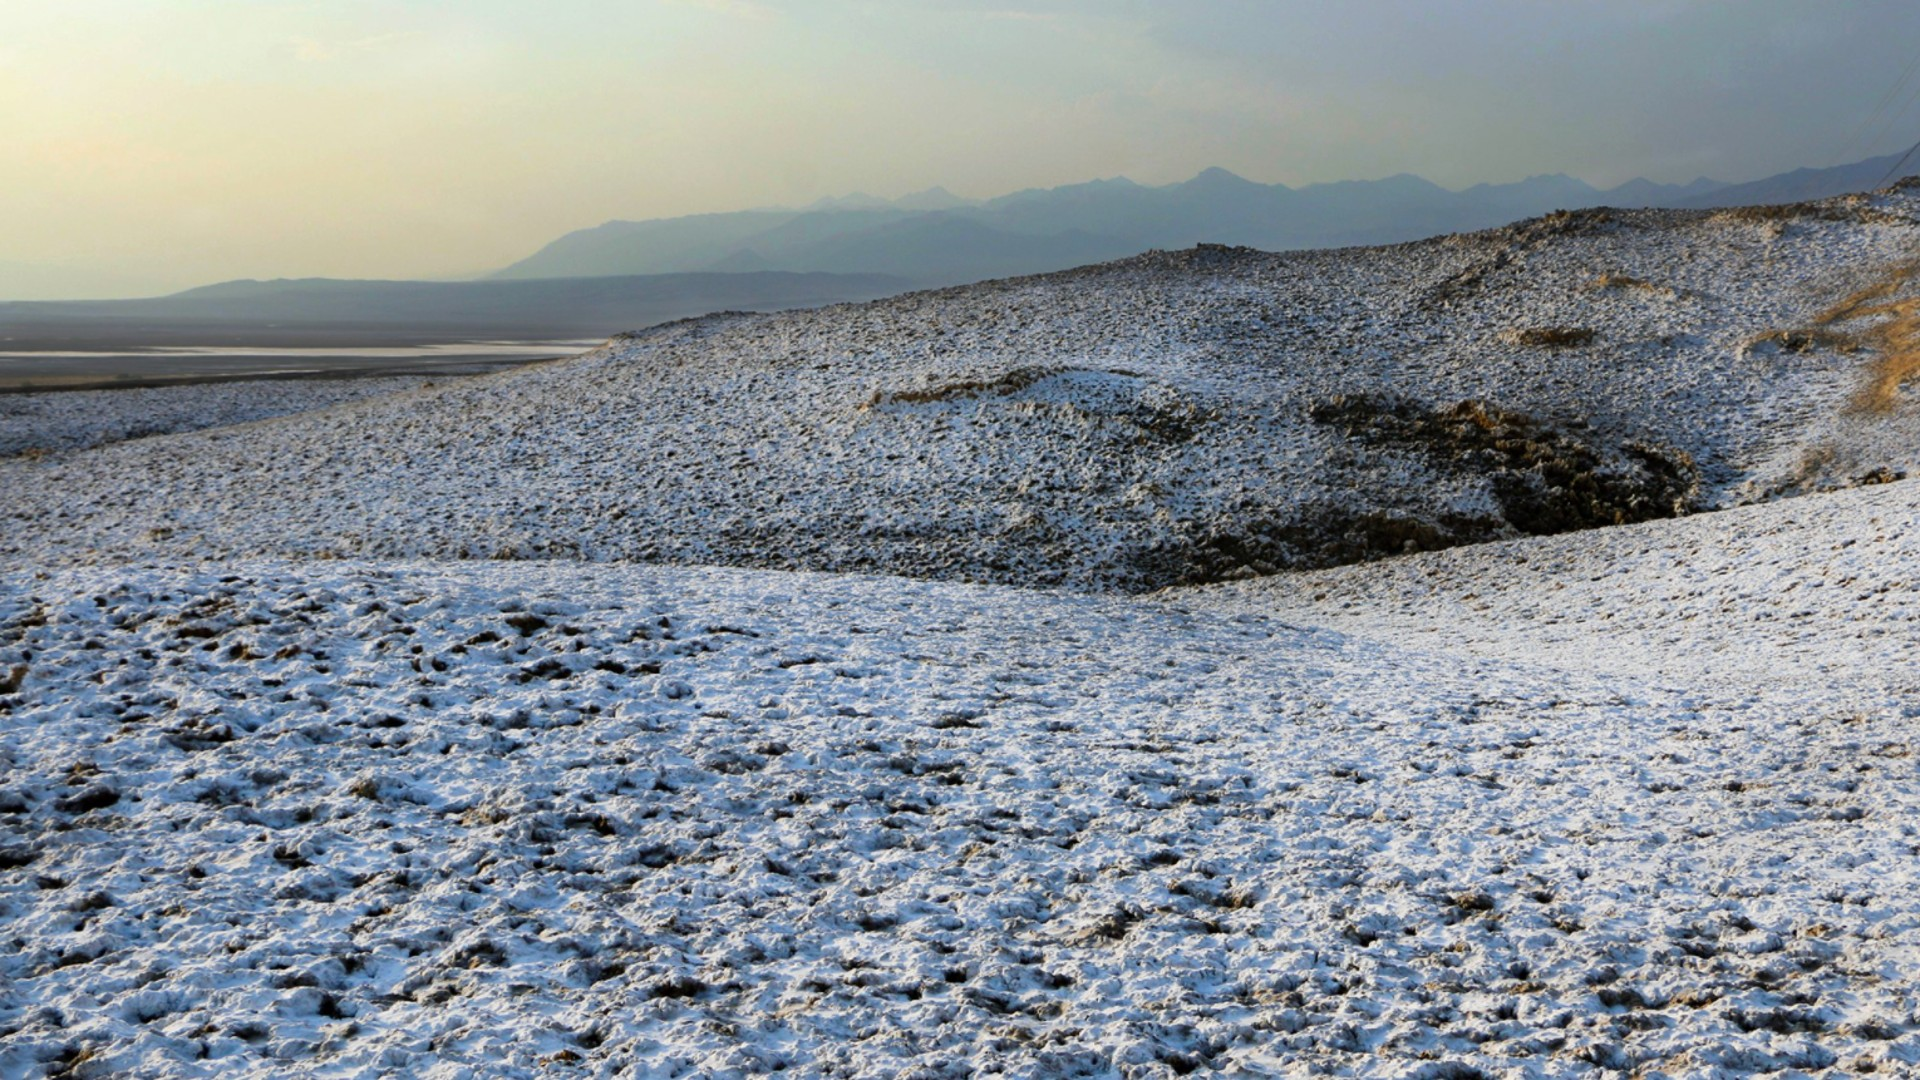 A snow-like dusting at Death Valley National Park was caused by rain soaking into the soil and dissolving salt beneath the surface, rangers said.(M. Gage / National Park Service)